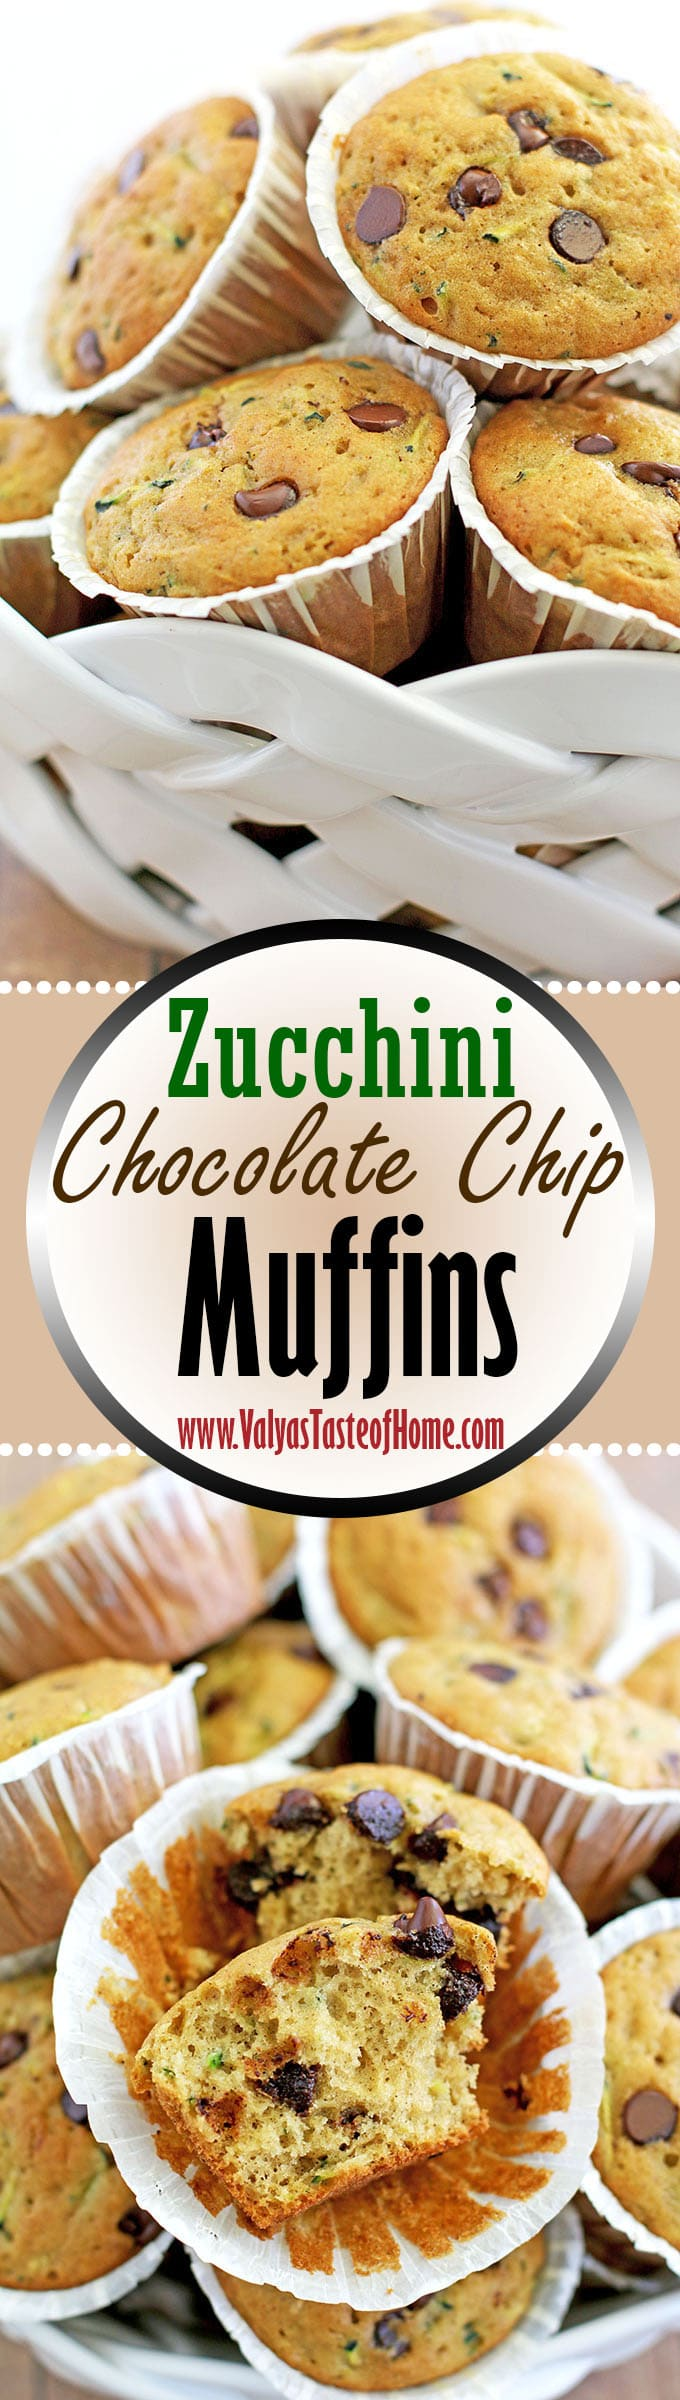 Zucchini Chocolate Chip Muffins Recipe - Valya's Taste of Home